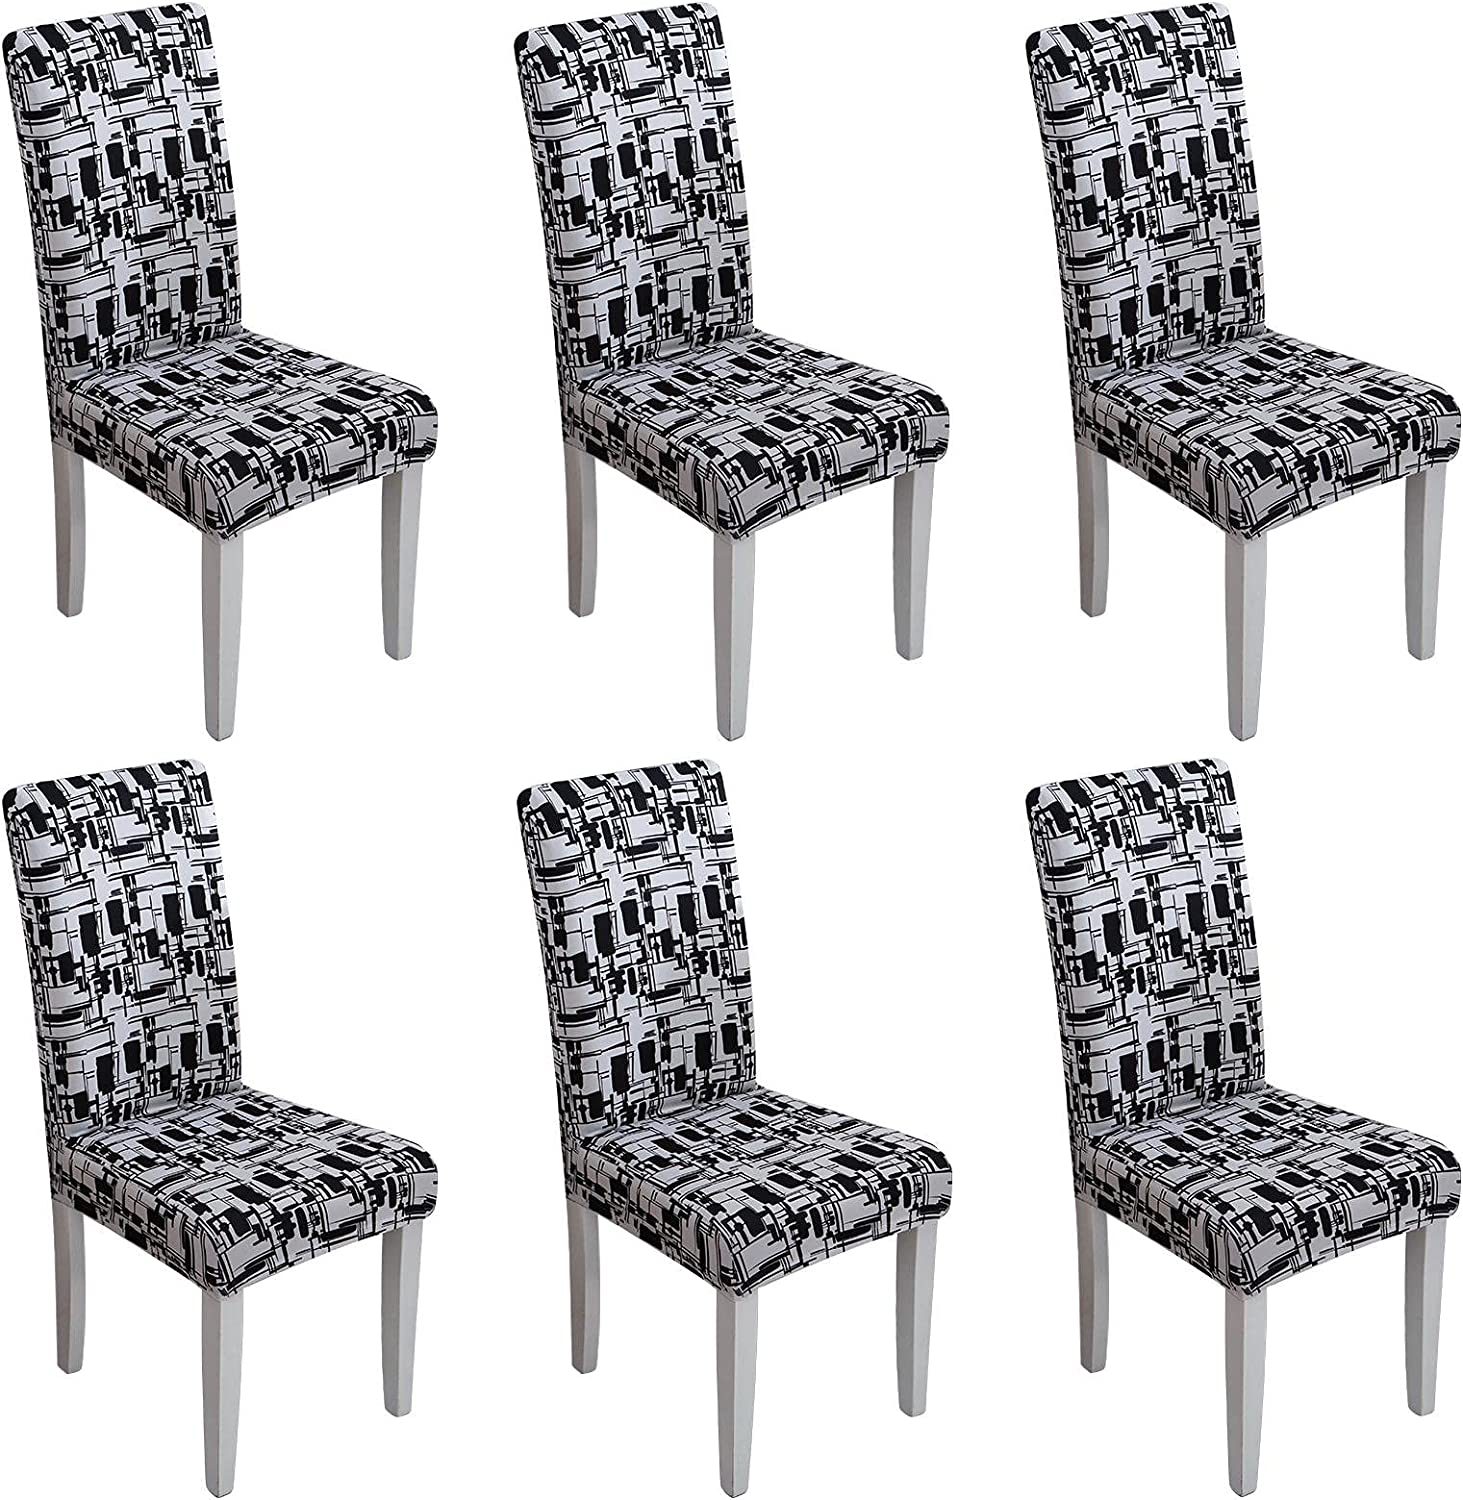 Dining Room Chair Covers Set of Spandex Soft NEW before selling ☆ Fit Raleigh Mall 6 Removable Wa